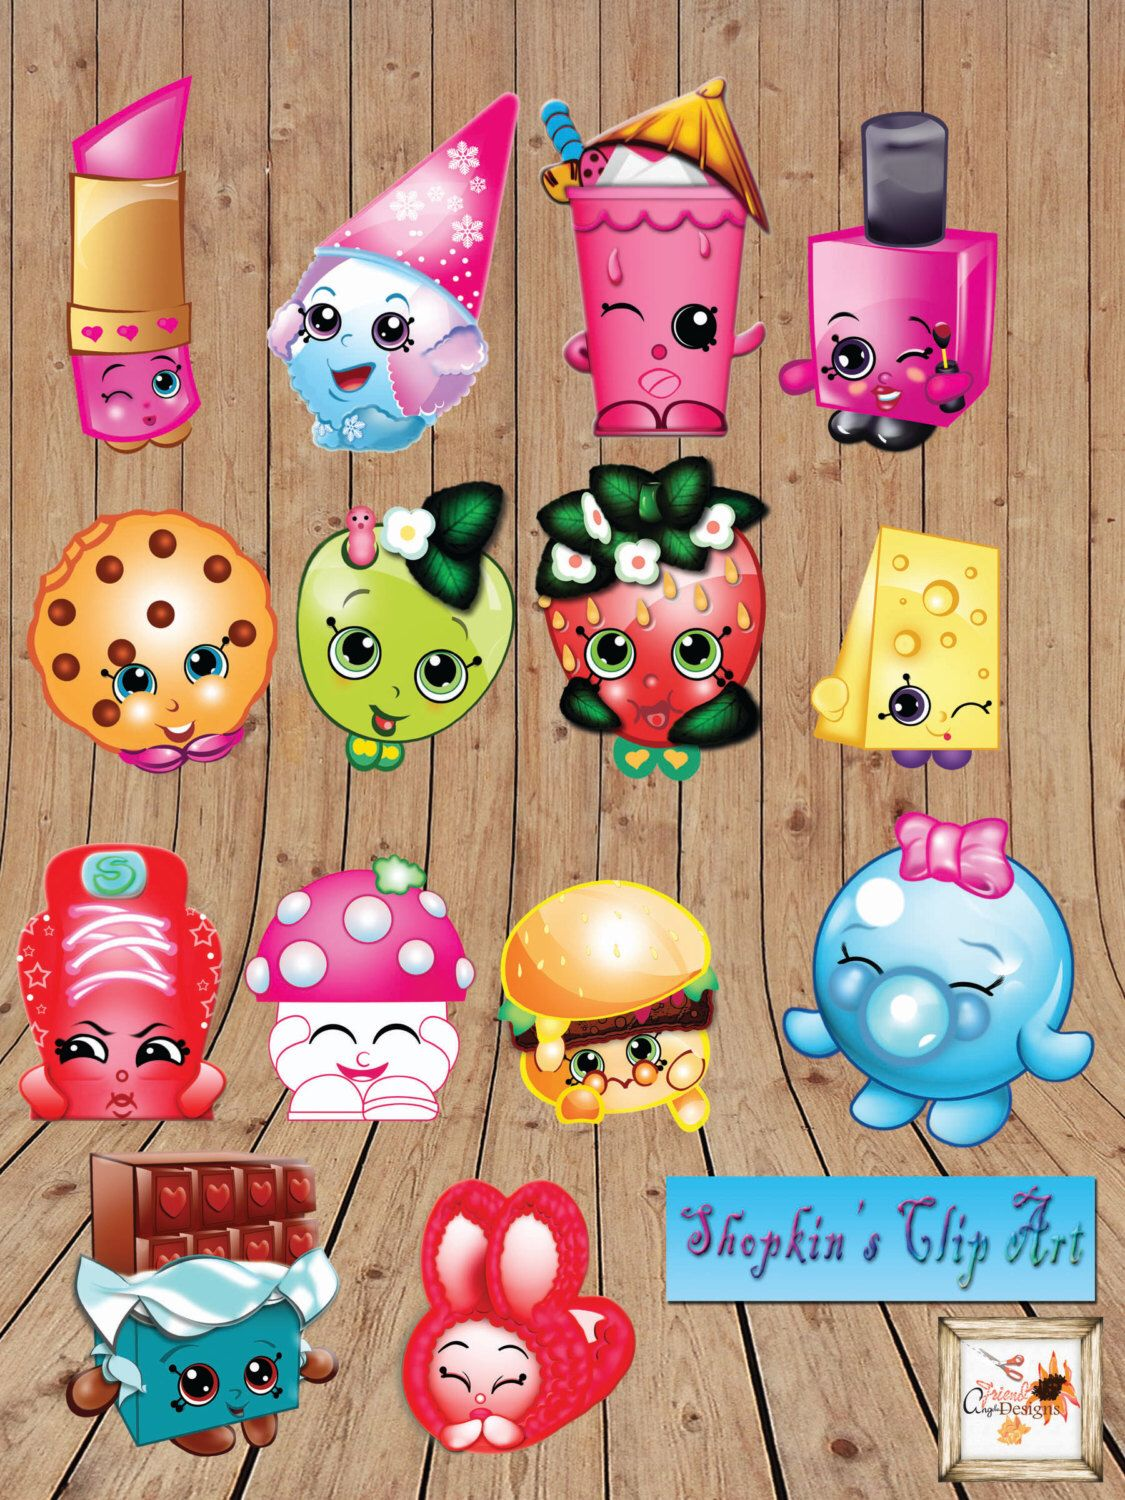 Pin by cherilyn farcon on i would like one of these - Shopkins pics ...